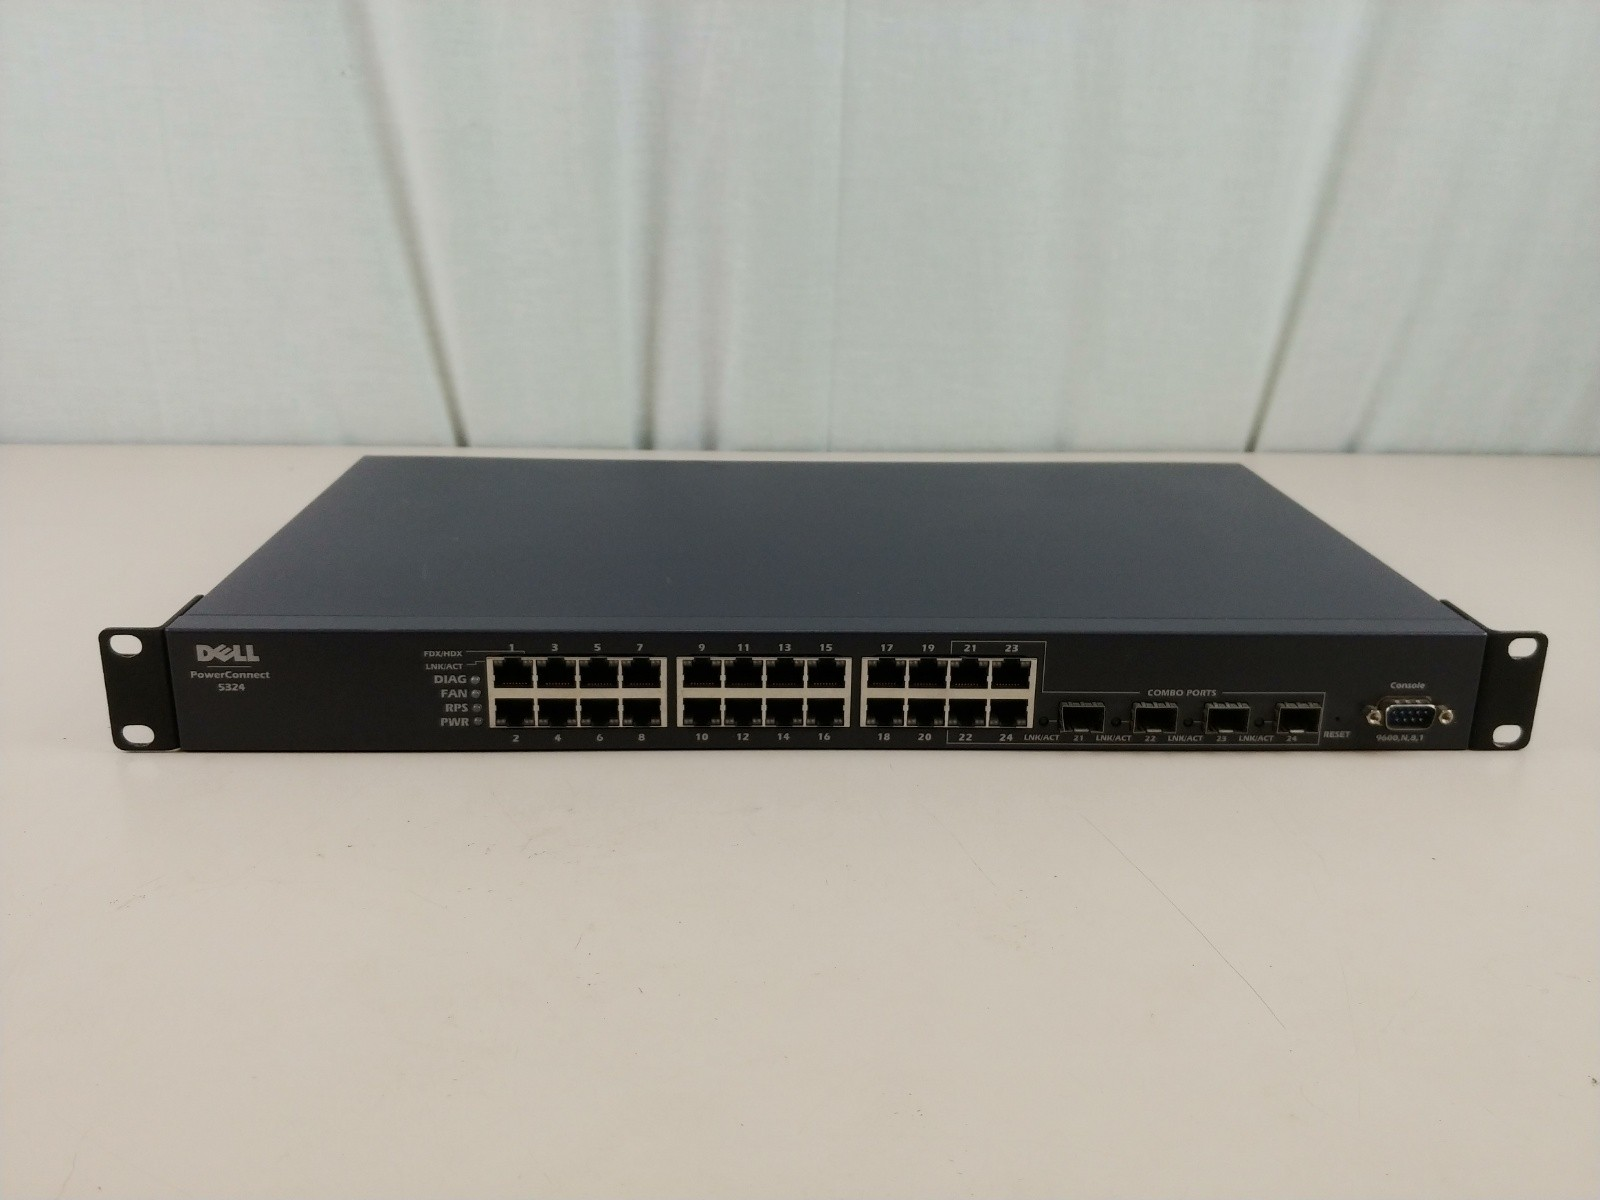 Dell Powerconnect 5324 Switch 24 Gigabit Ports with 4 SFP Ports